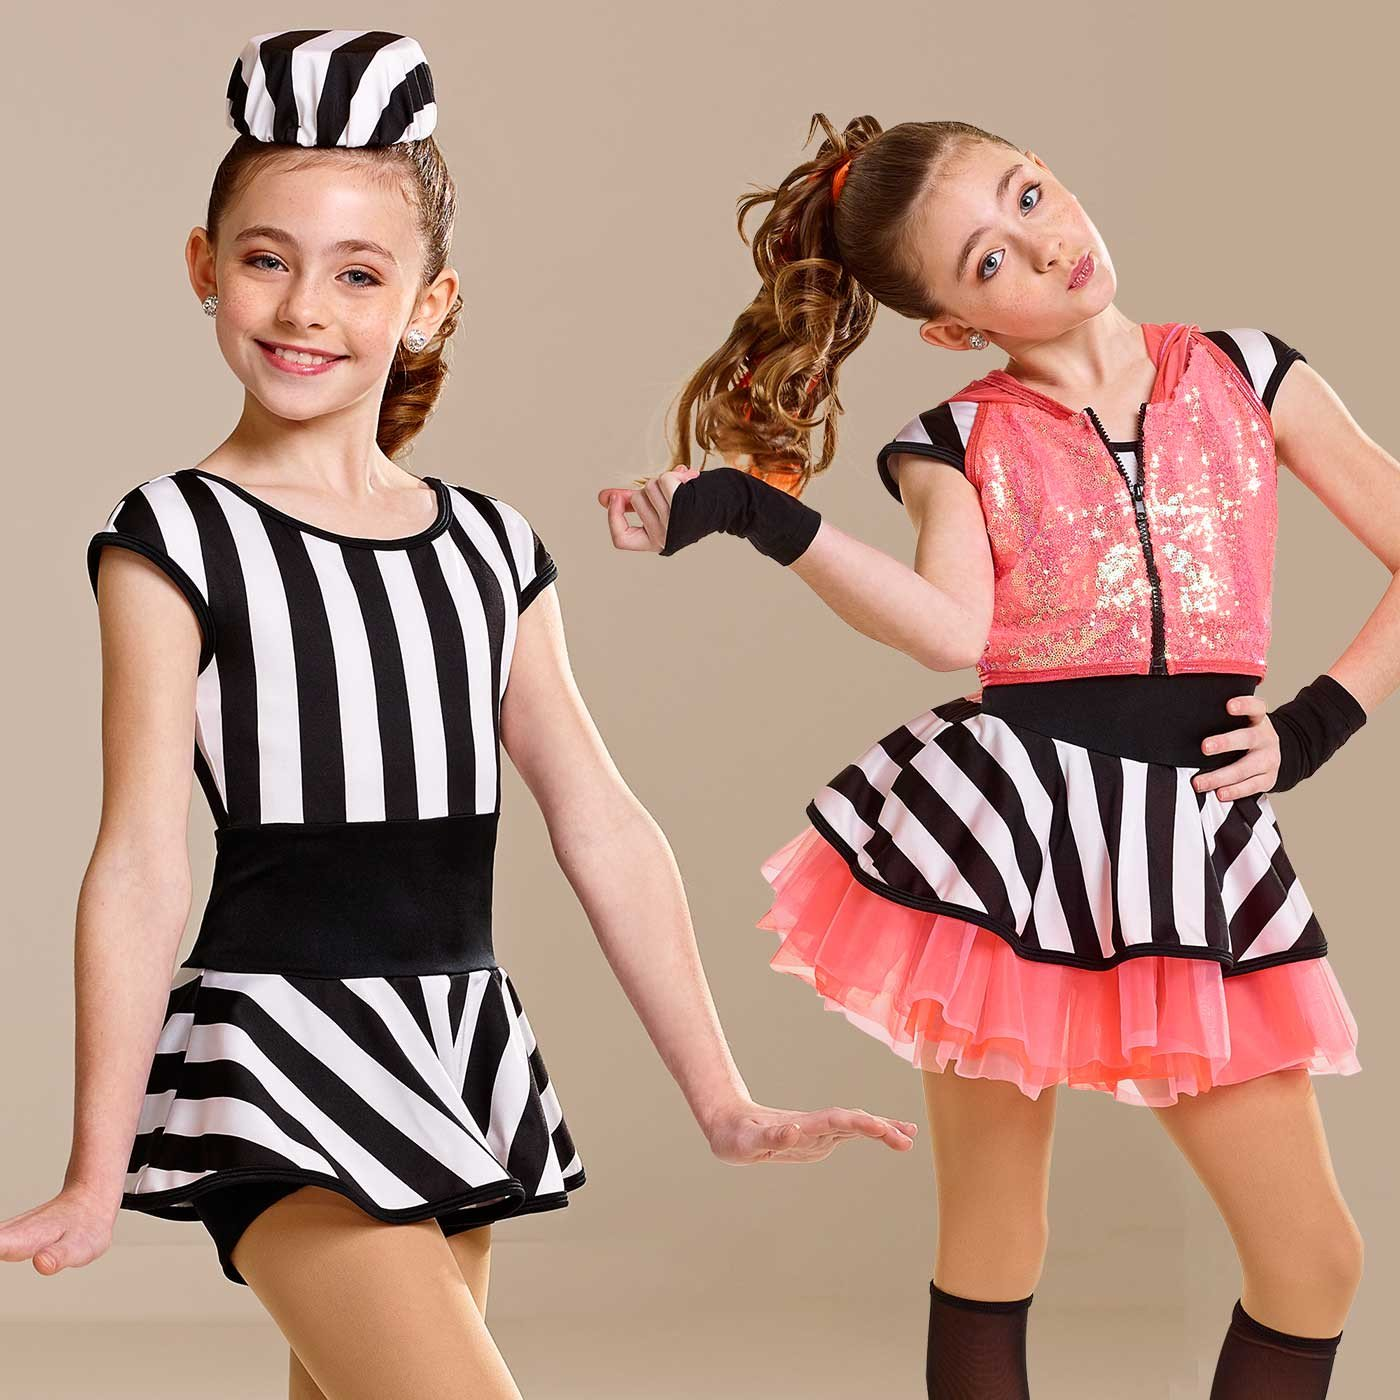 Image result for e1944 rock party curtain call costumes